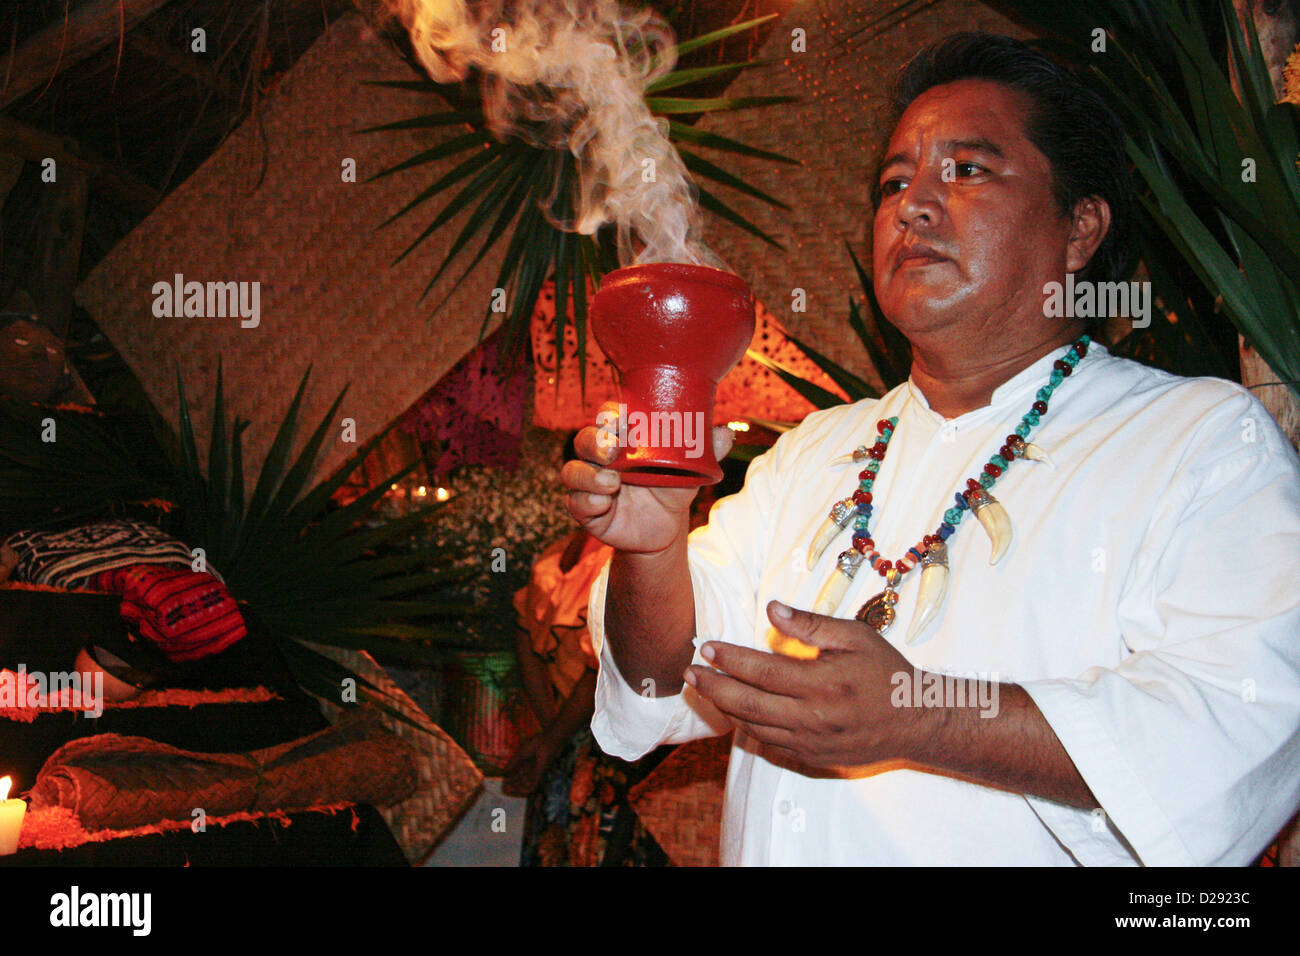 Shaman At Altar For Day Of The Dead Festivities At Xcaret Near Playa Del Carmen. Mexico - Stock Image